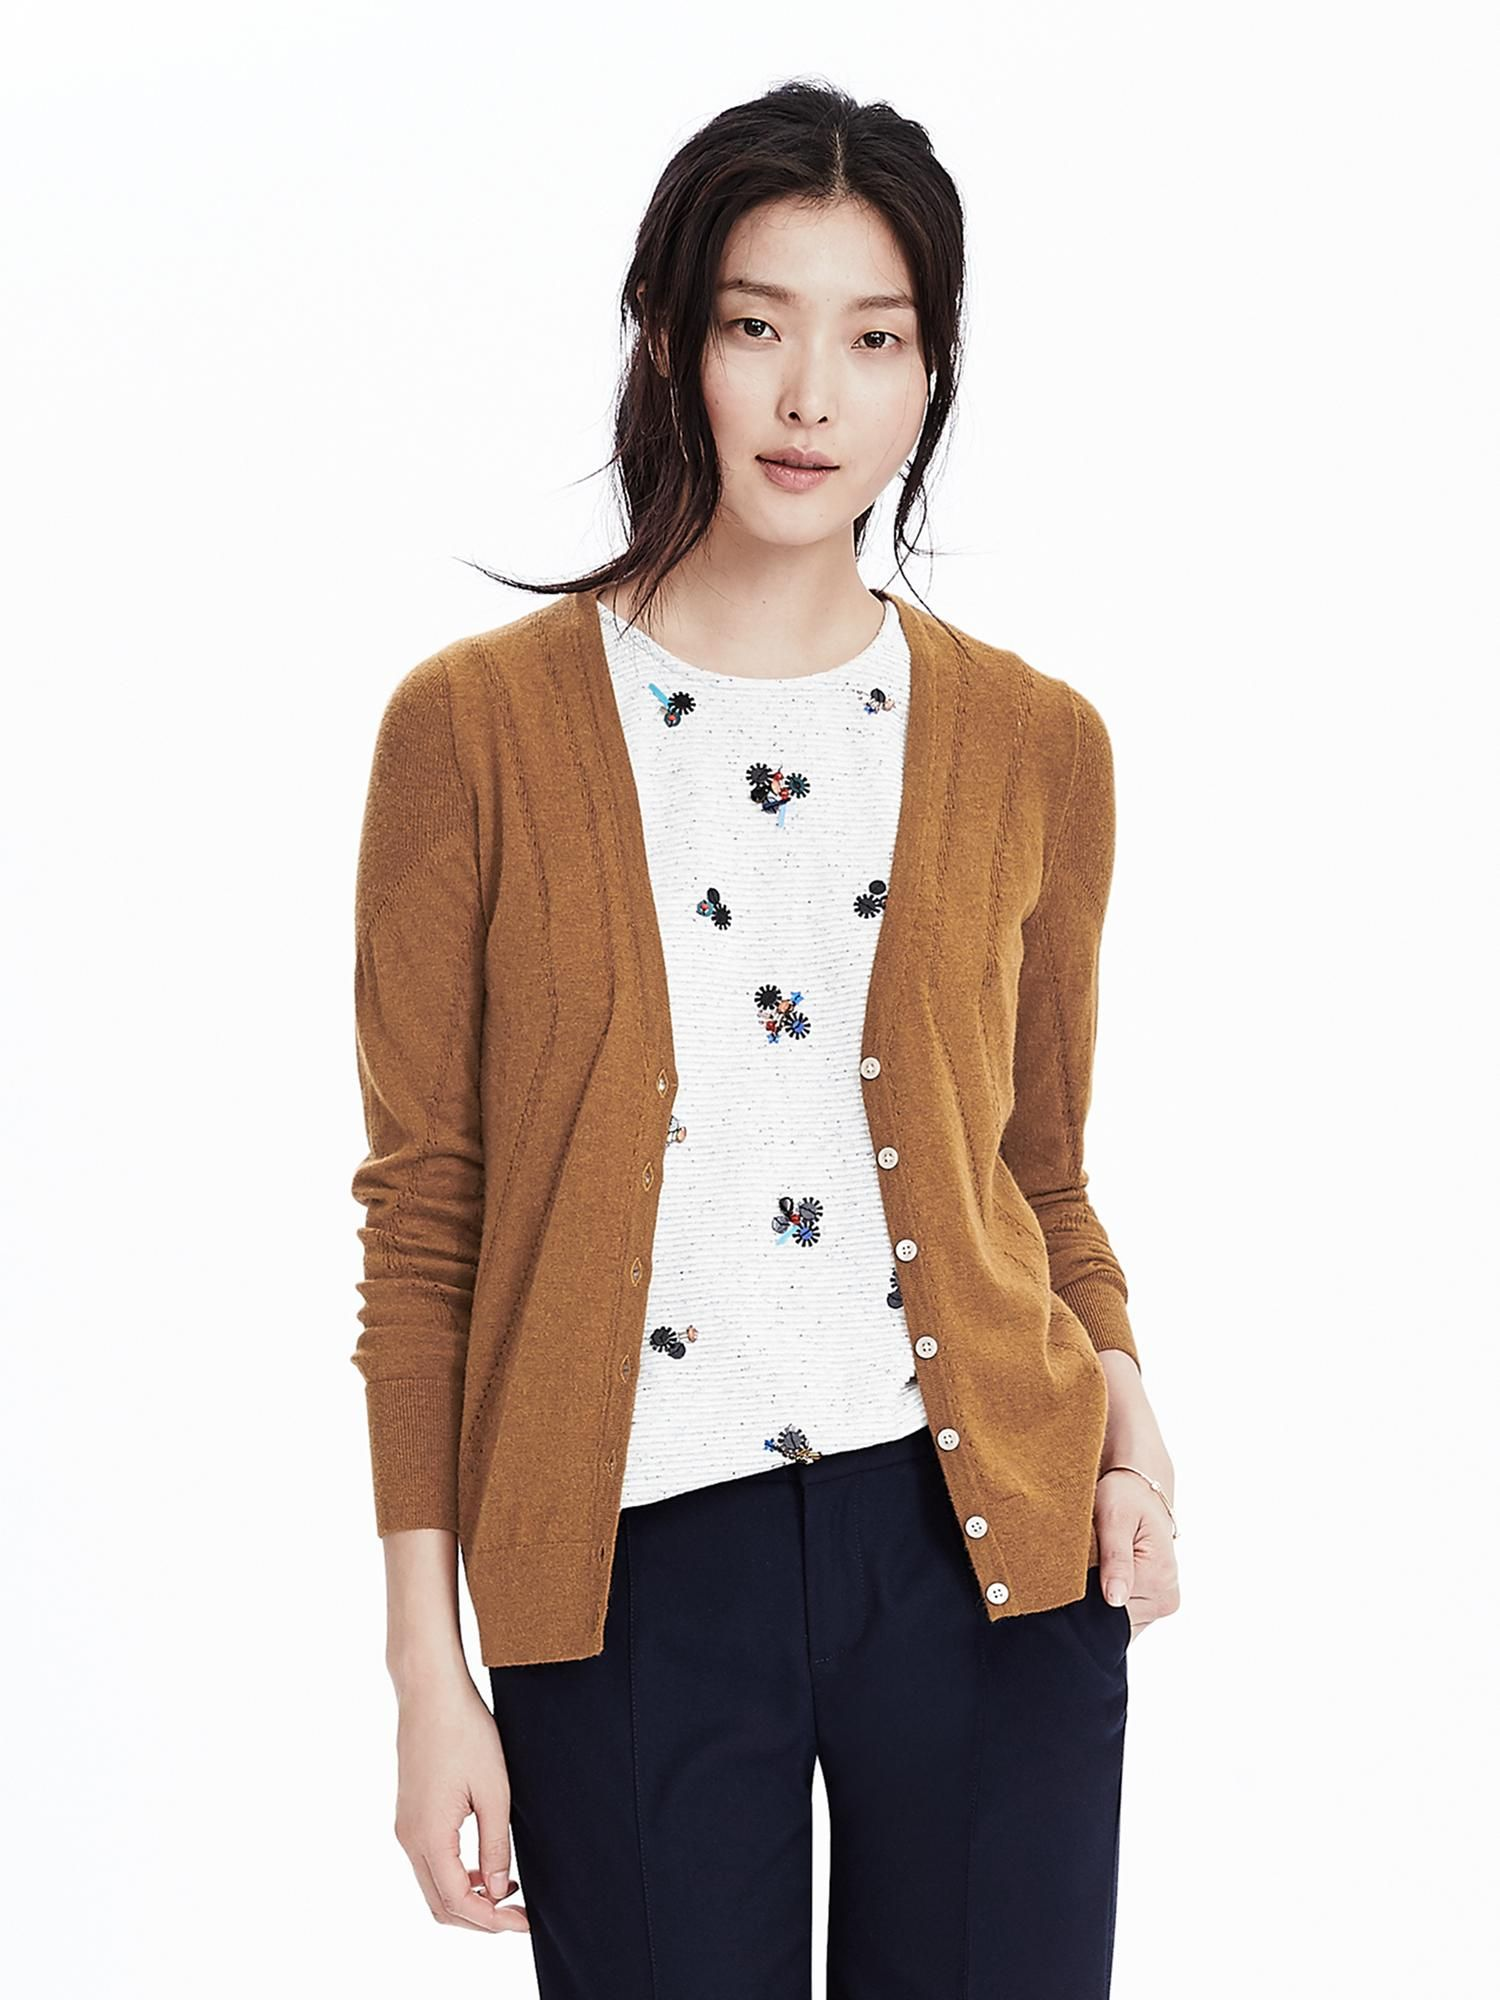 this cardigan color is everything